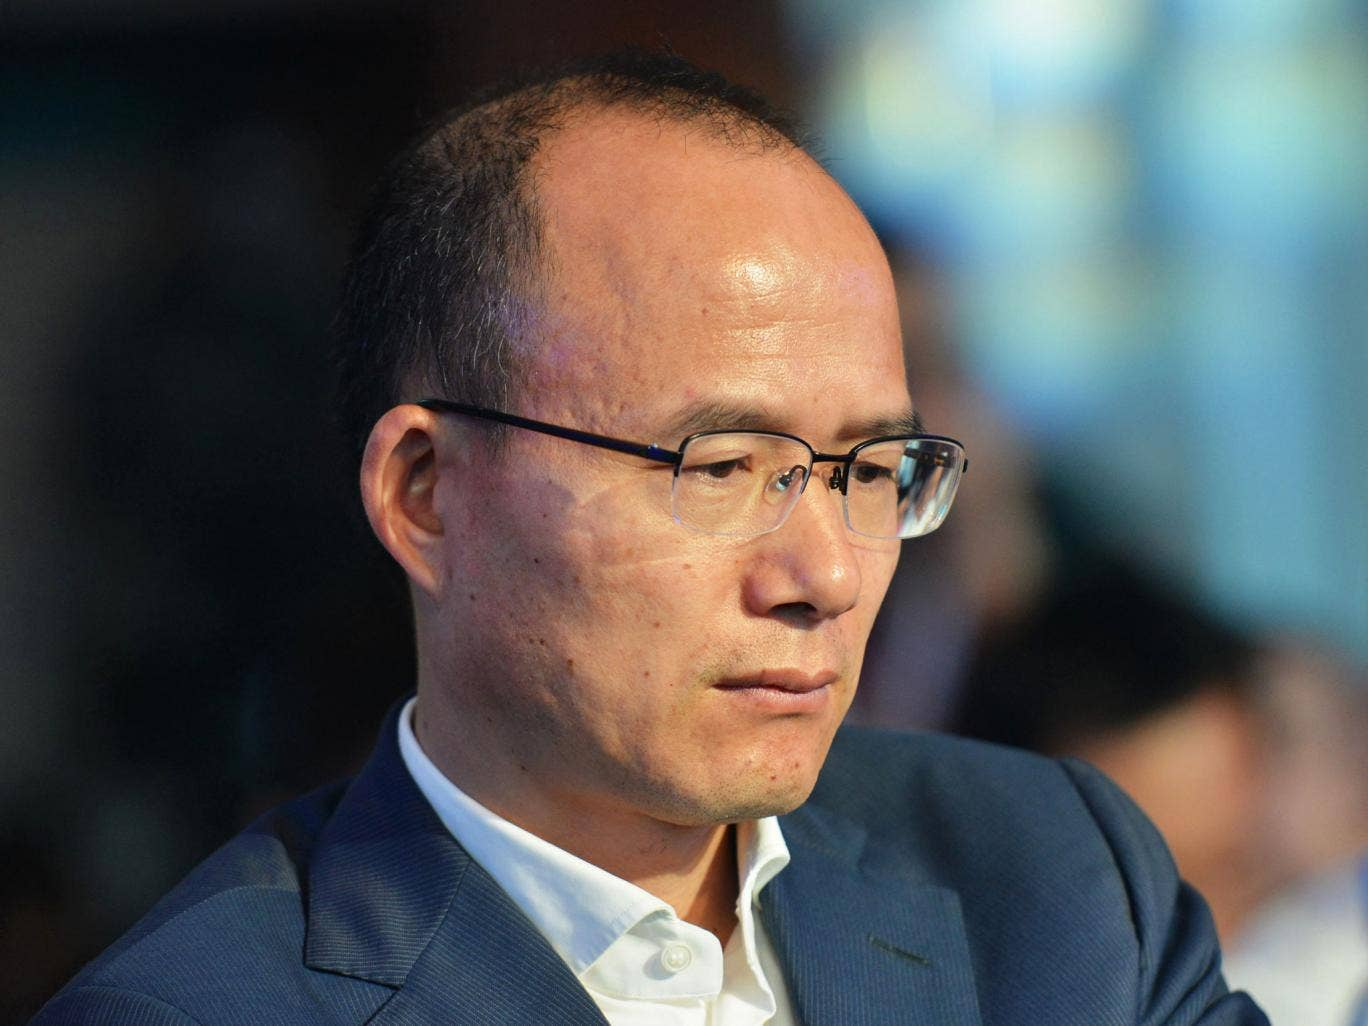 Fosun founder Guo Guangchang appears in public